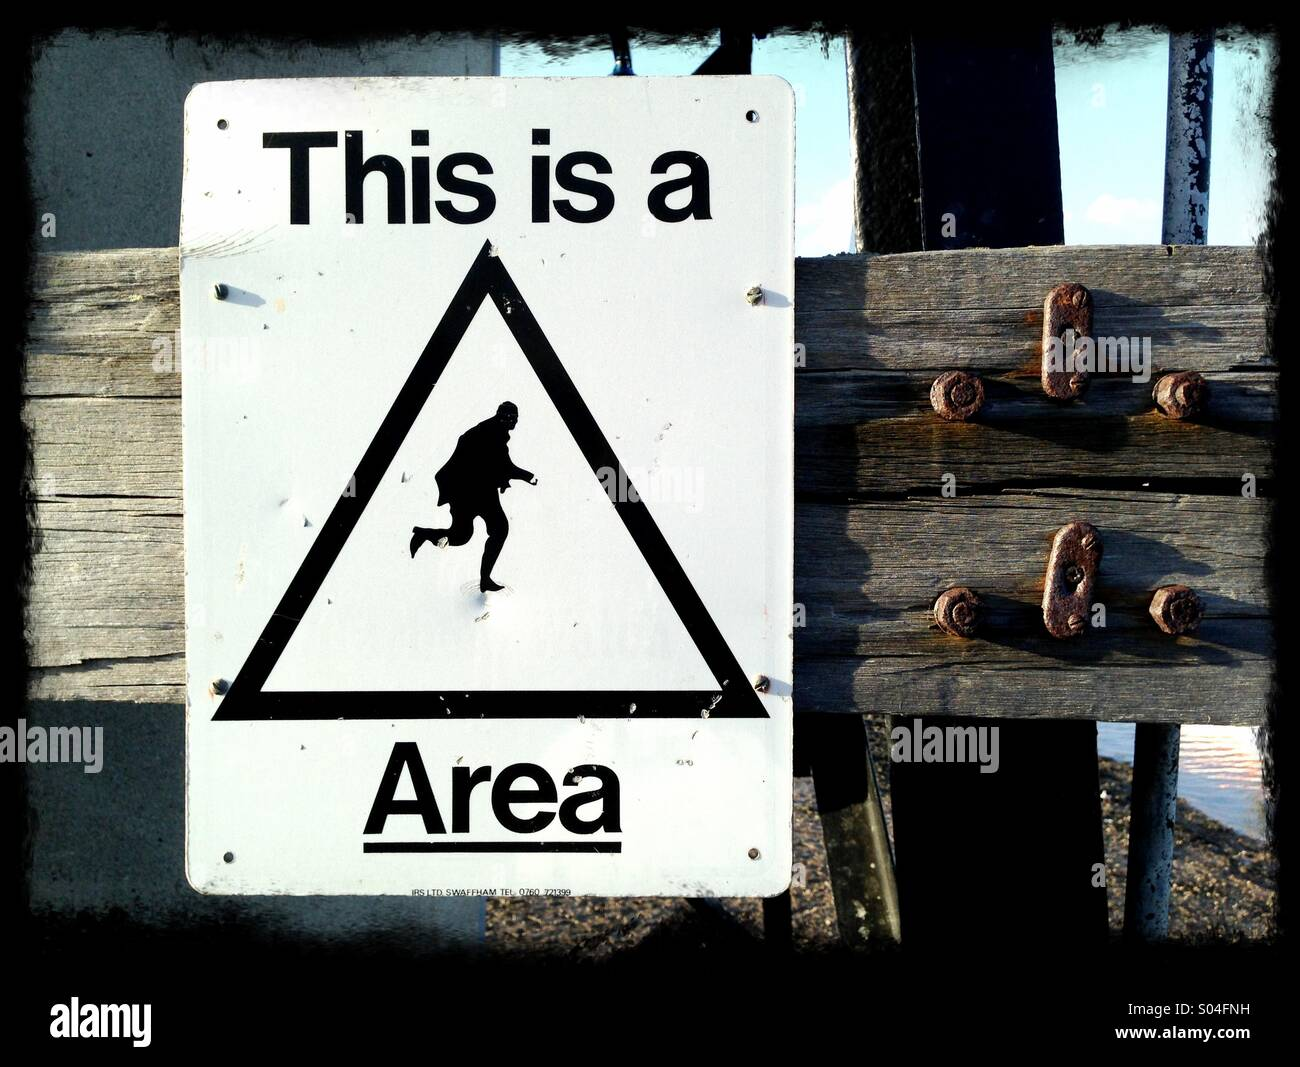 Anti- theft warning sign at the seaside. - Stock Image